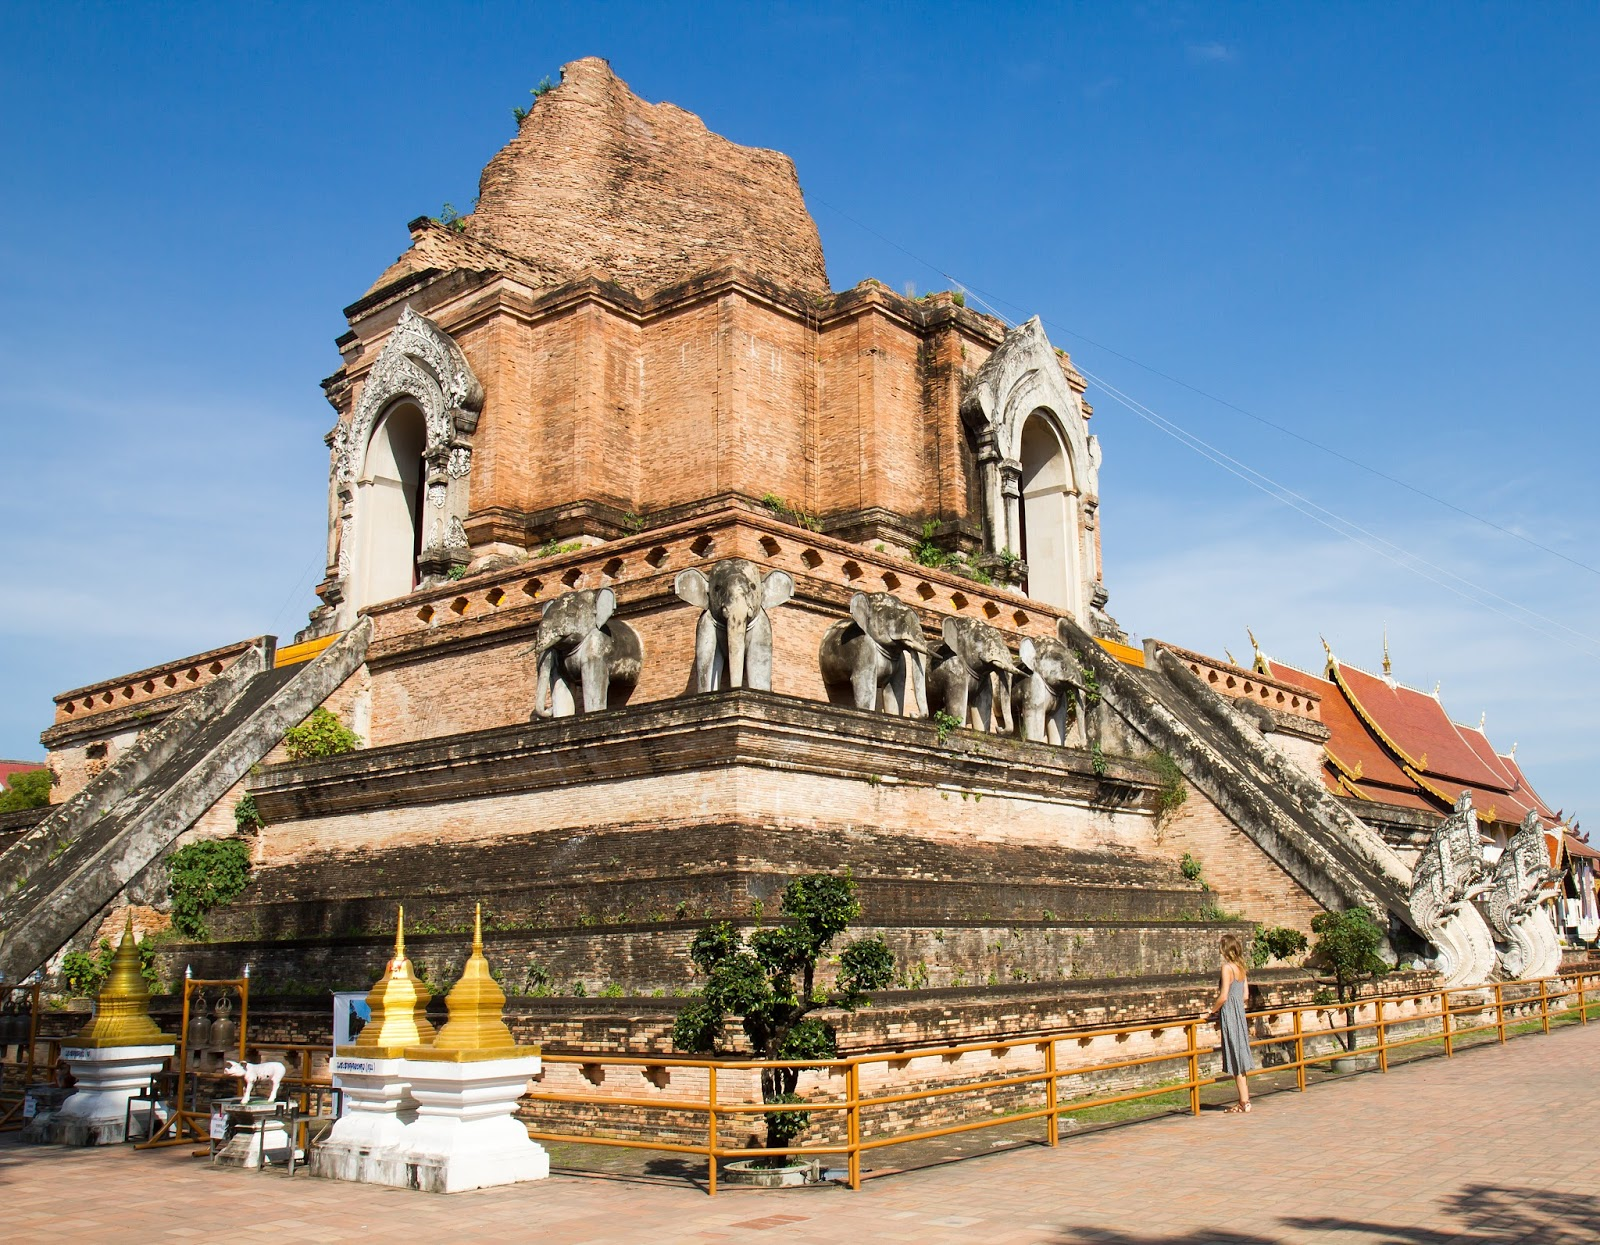 travel blogger, Alison Hutchinson, at Wat Chedi Luang Worawihan in Chiang Mai, Thailand